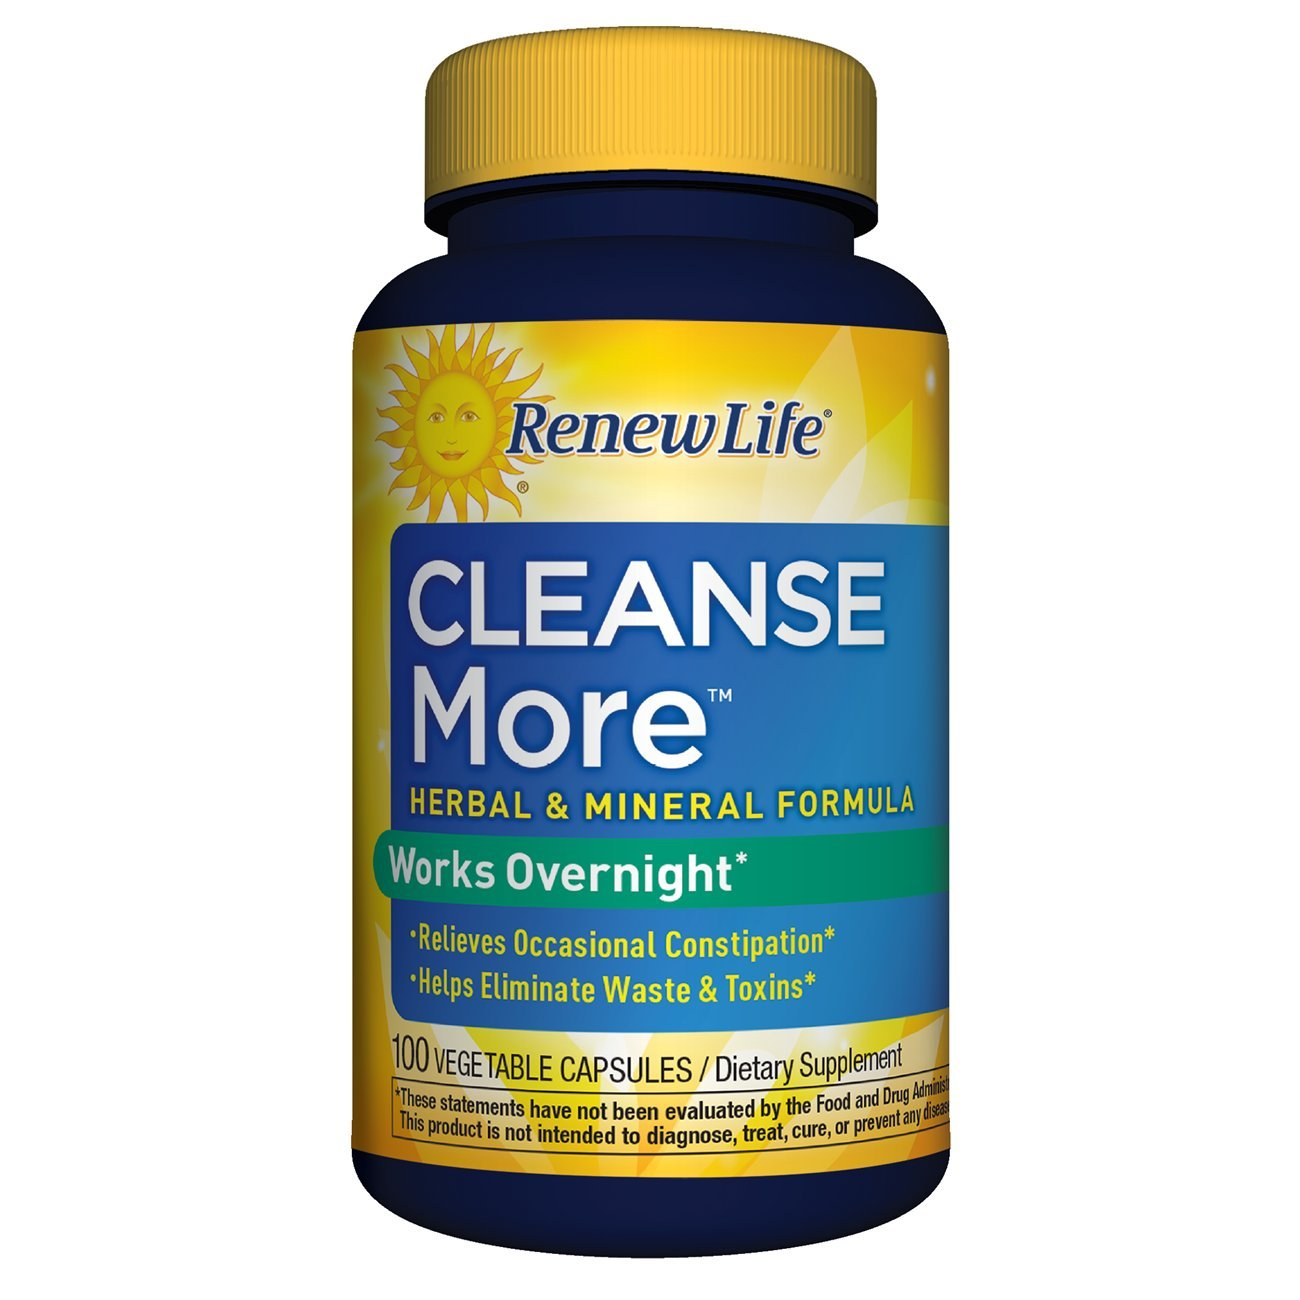 Renew Life - Cleanse More - constipation relief dietary supplement - 100 vegetable capsules by Renew Life